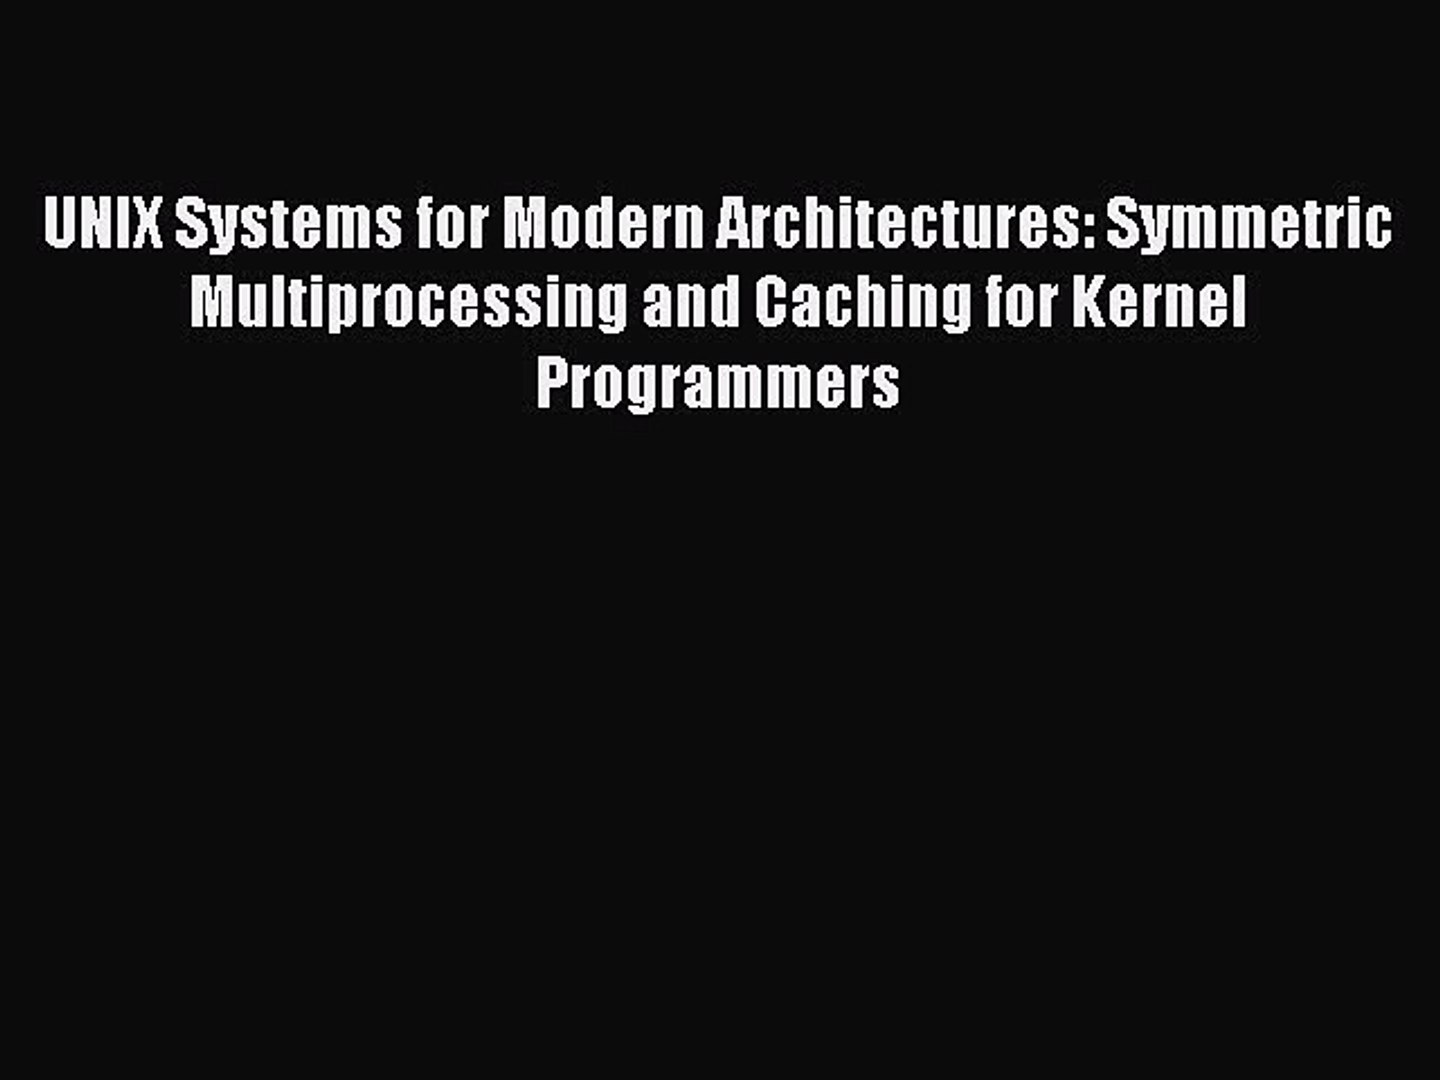 UNIX Systems for Modern Architectures Symmetric Multiprocessing and Caching for Kernel Programmers